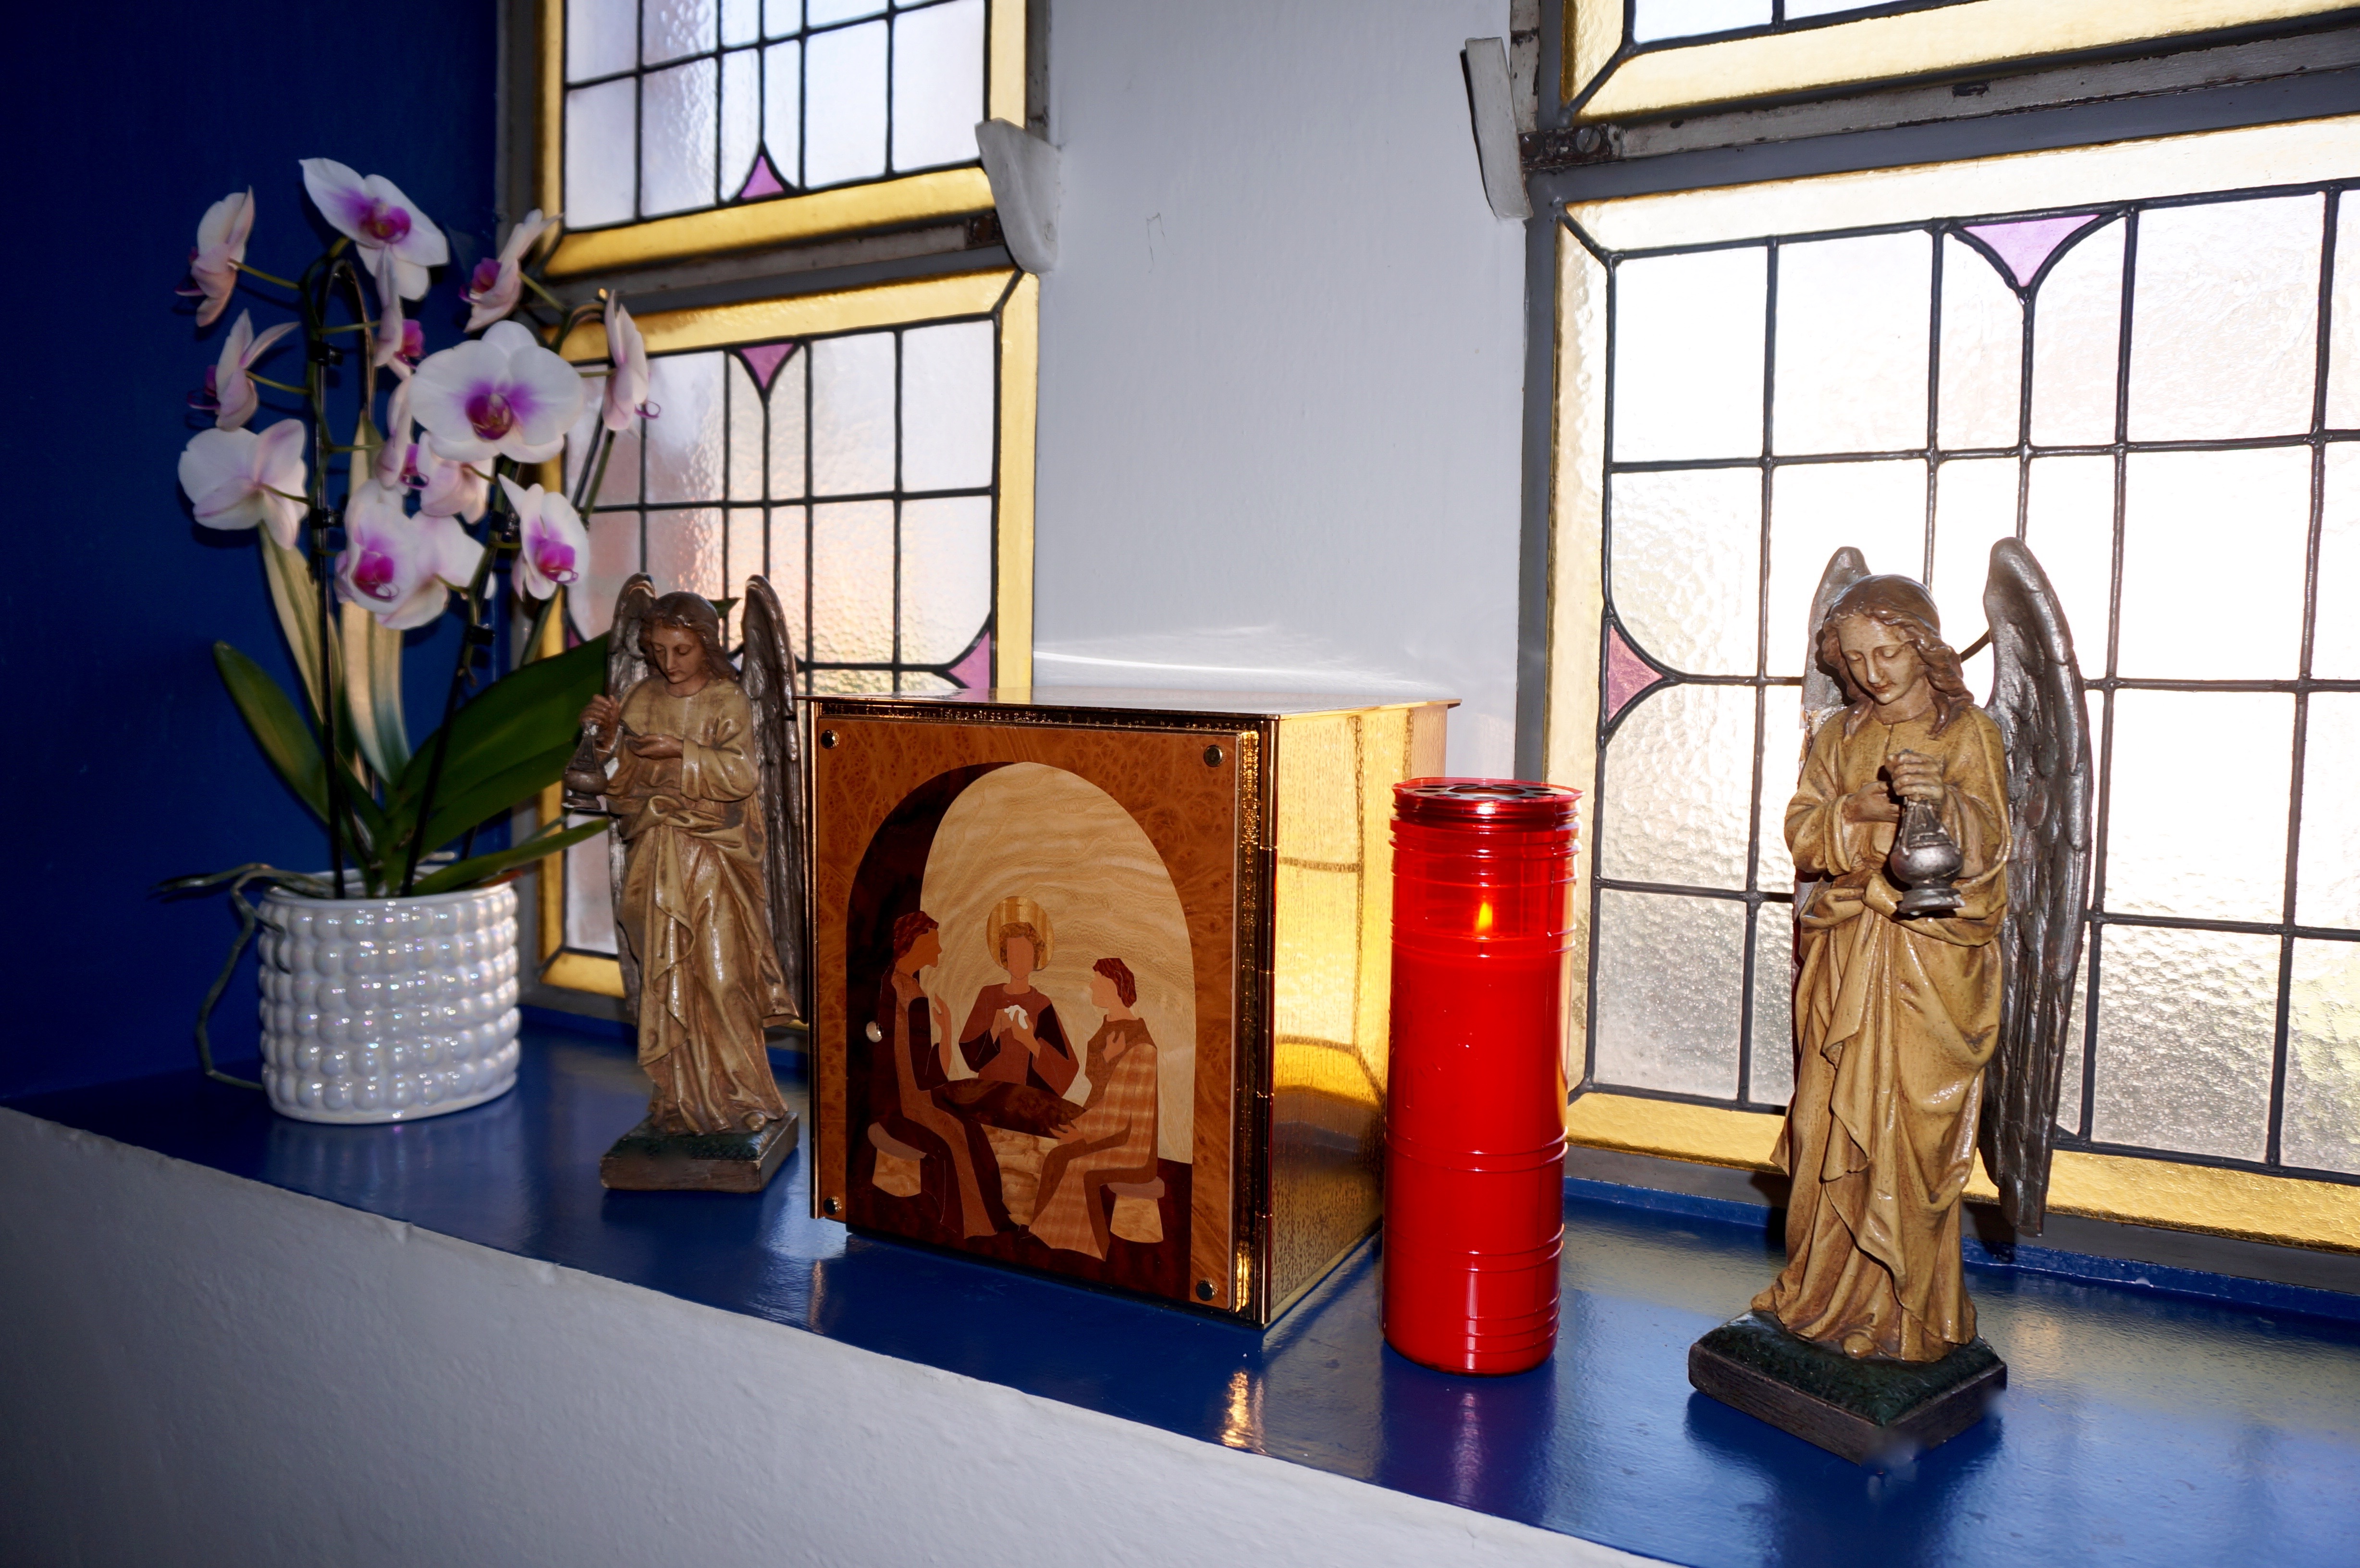 The Tabernacle